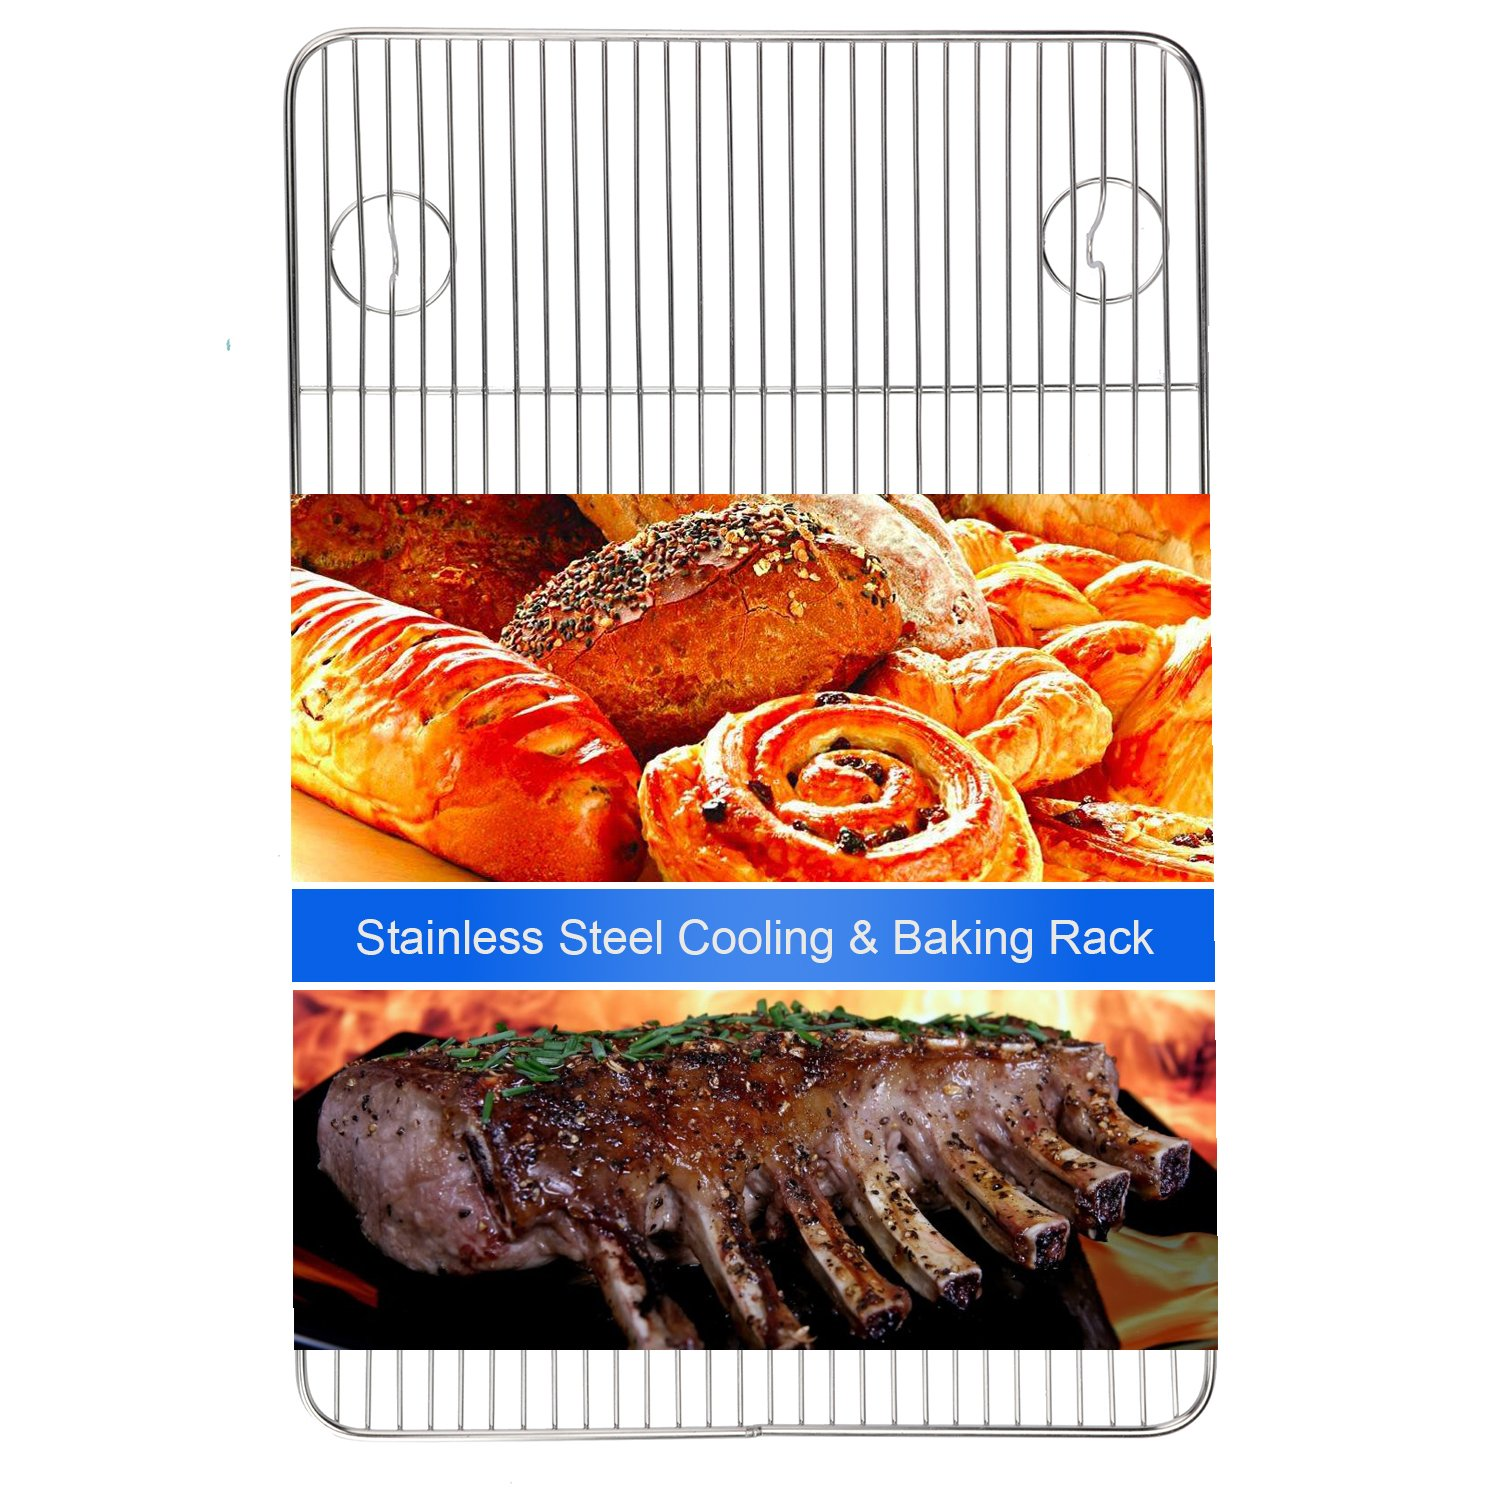 Heavy Duty Cooling Racks Onmexto Stainless Steel Wire Rack 11.42x17.52 Inches Safe Chief Quality for Roasting Baking and Grilling